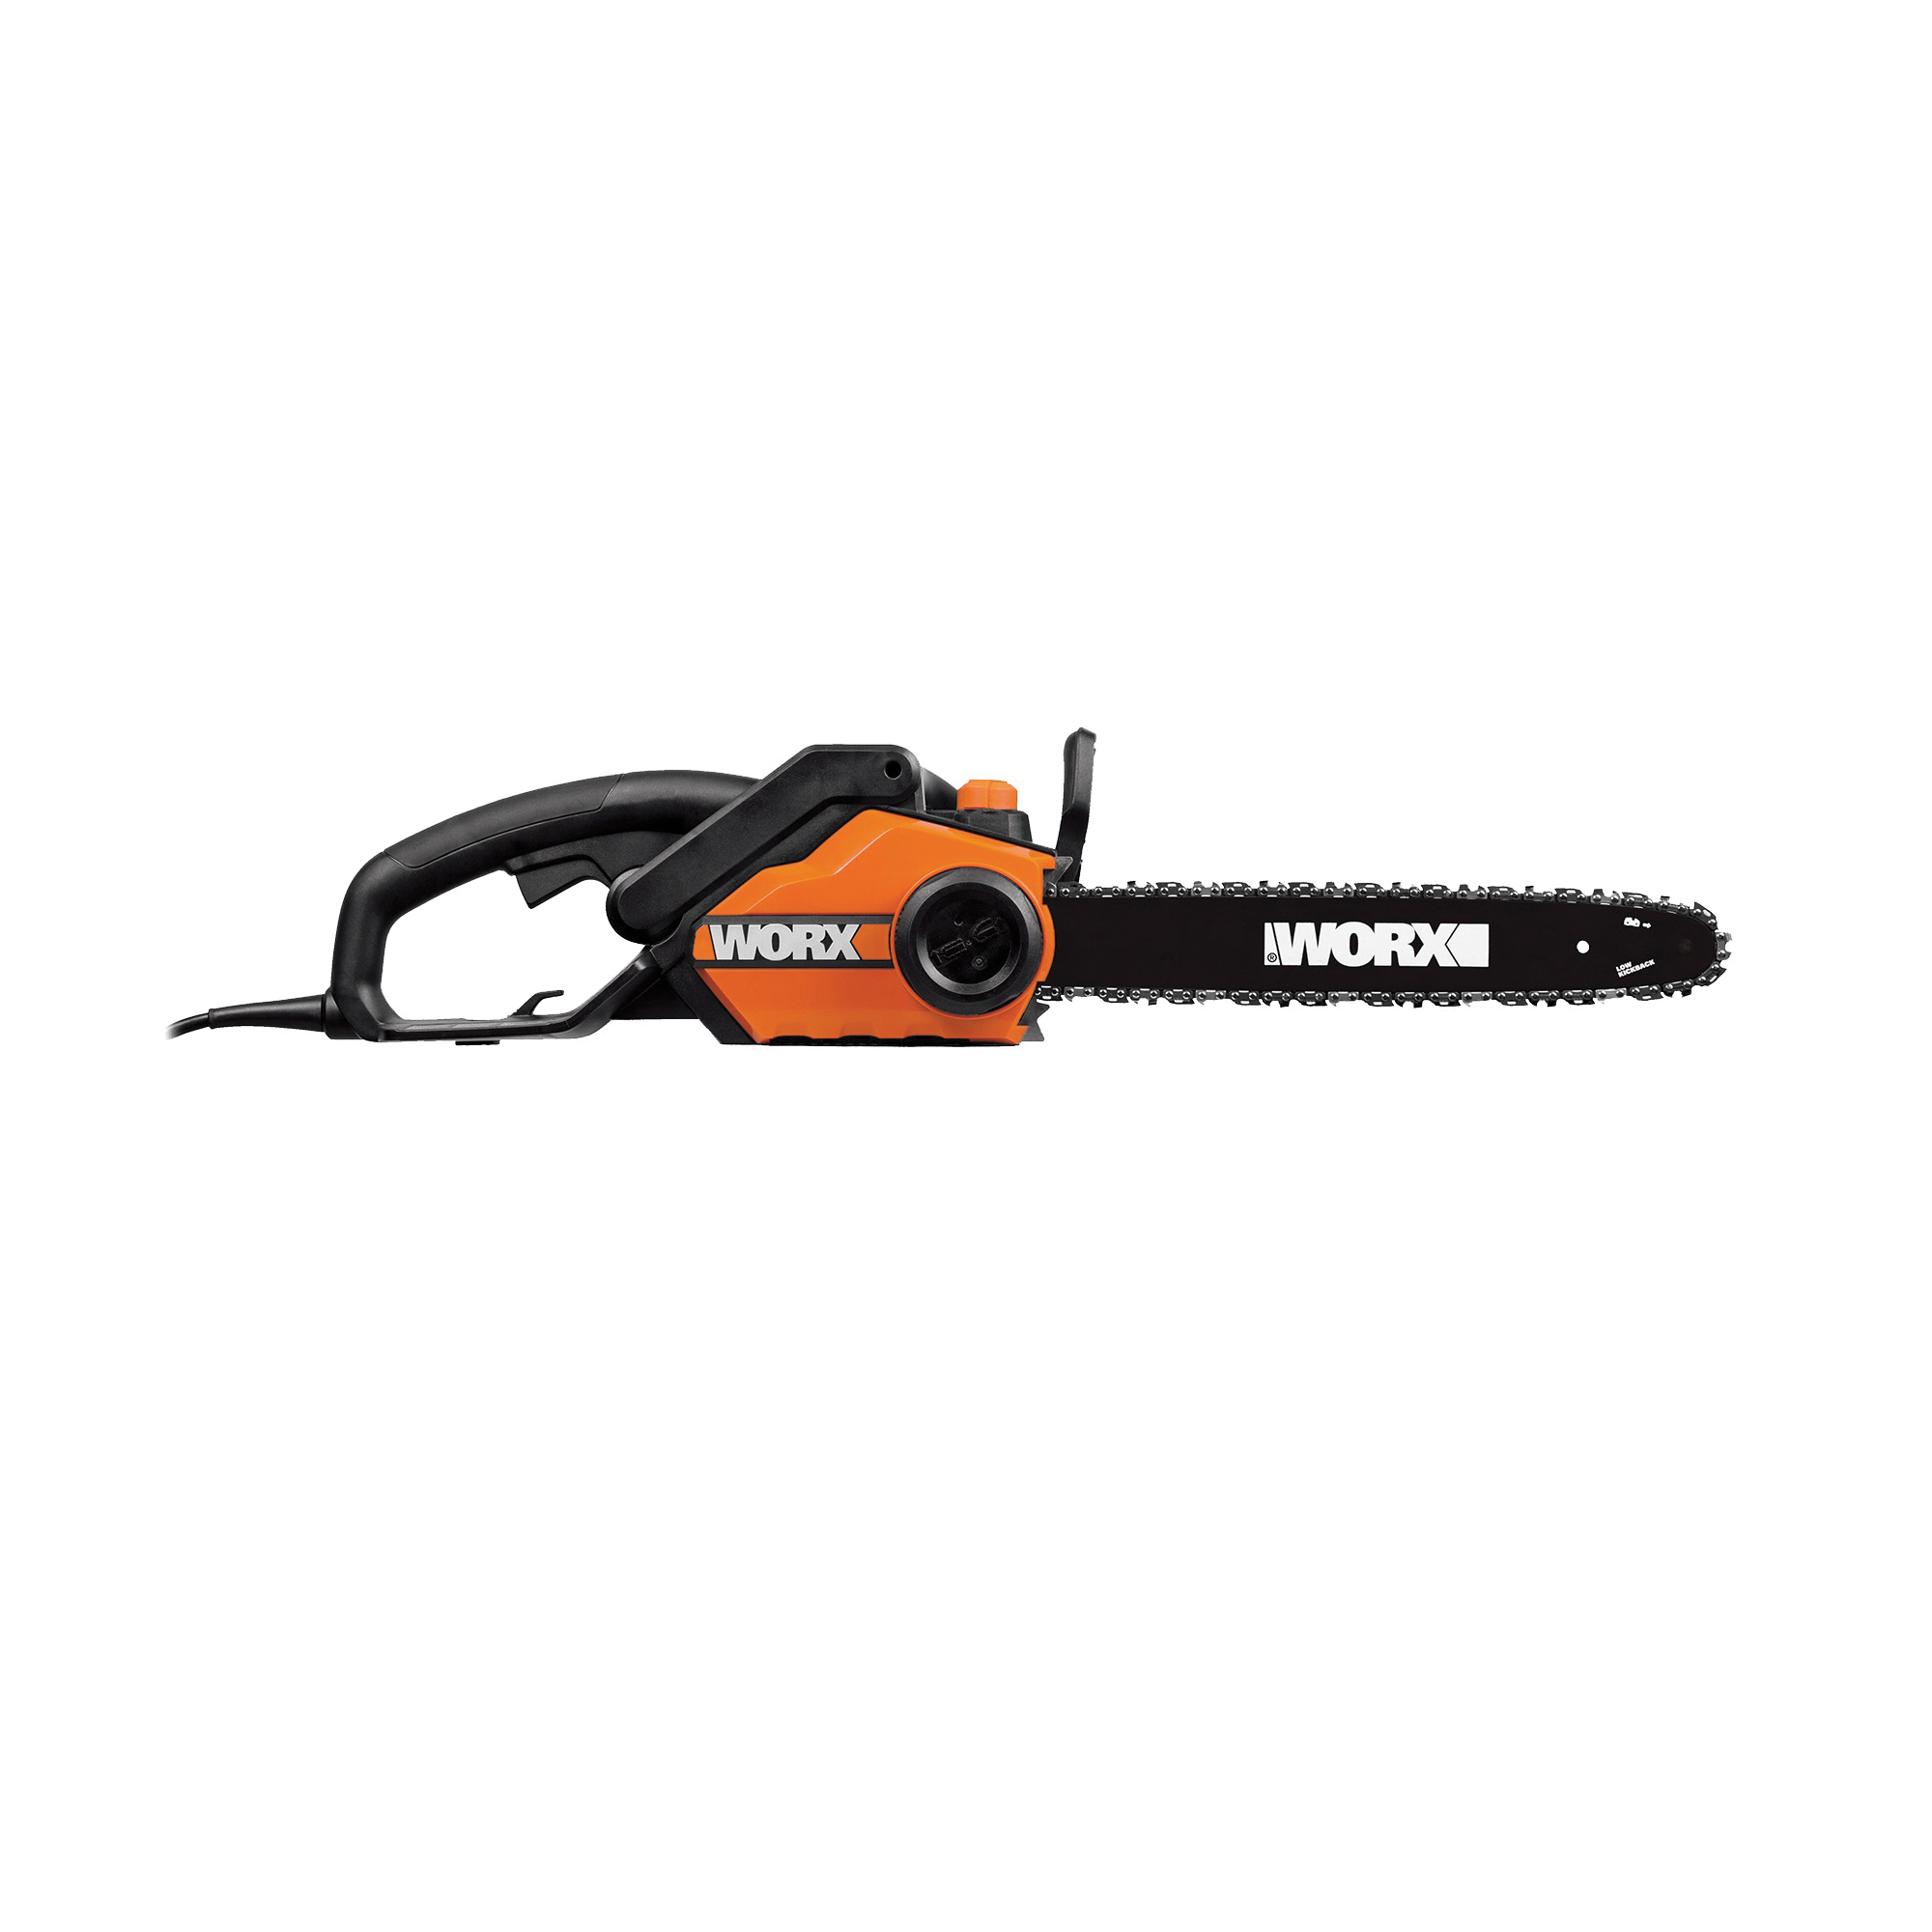 Picture of WORX WG303.1 Electric Chainsaw, 14.5 A, 120 V, 3.5 hp, 16 in L Bar/Chain, 3/8 in Bar/Chain Pitch, Rear Handle